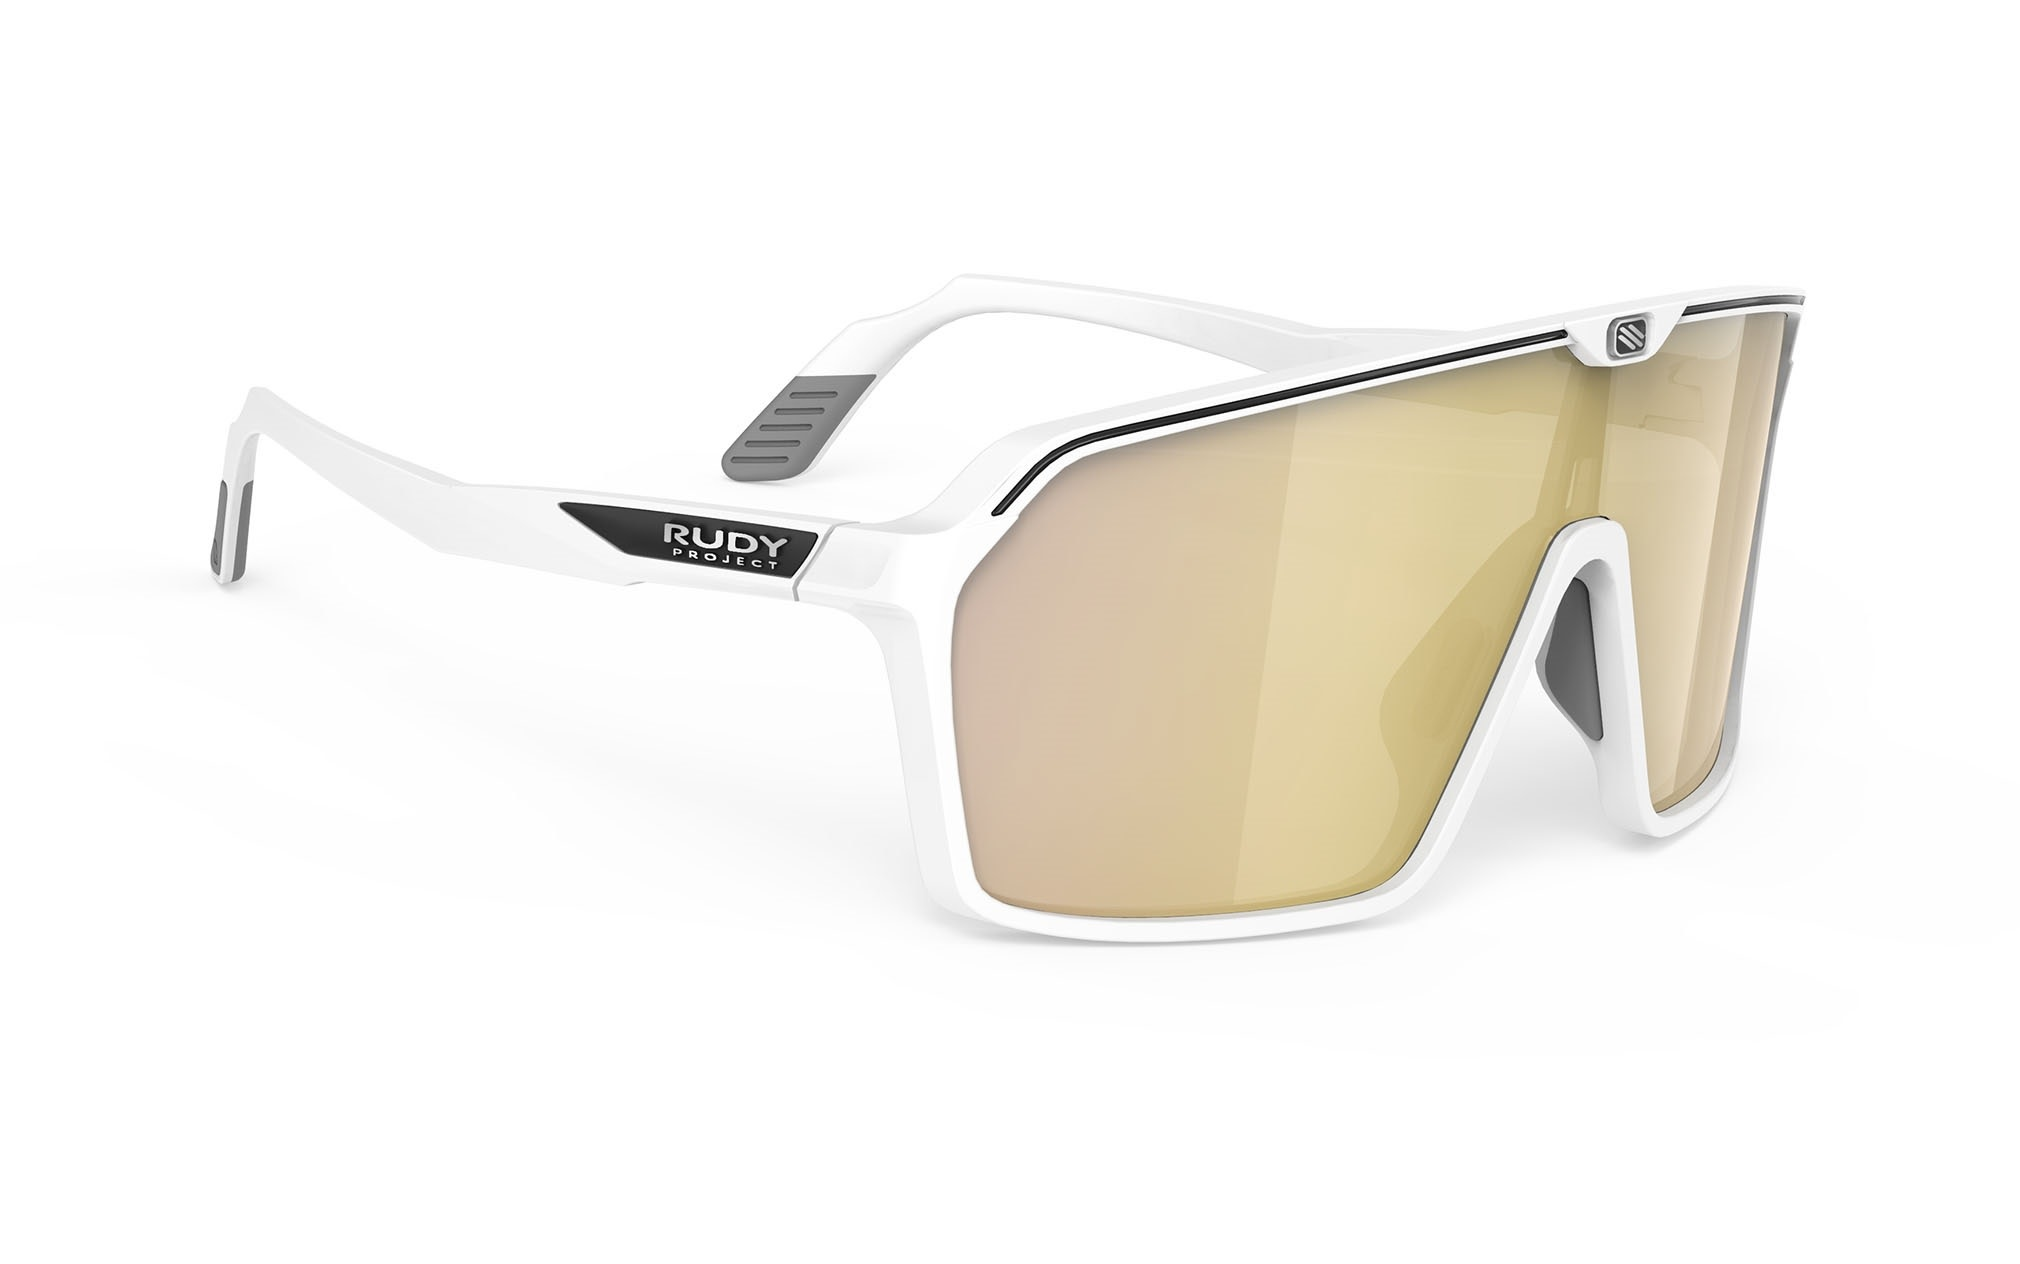 Rudy Project Rudy Project SPINSHIELD Compartir White Matte - Rp Optics Multilaser Gold